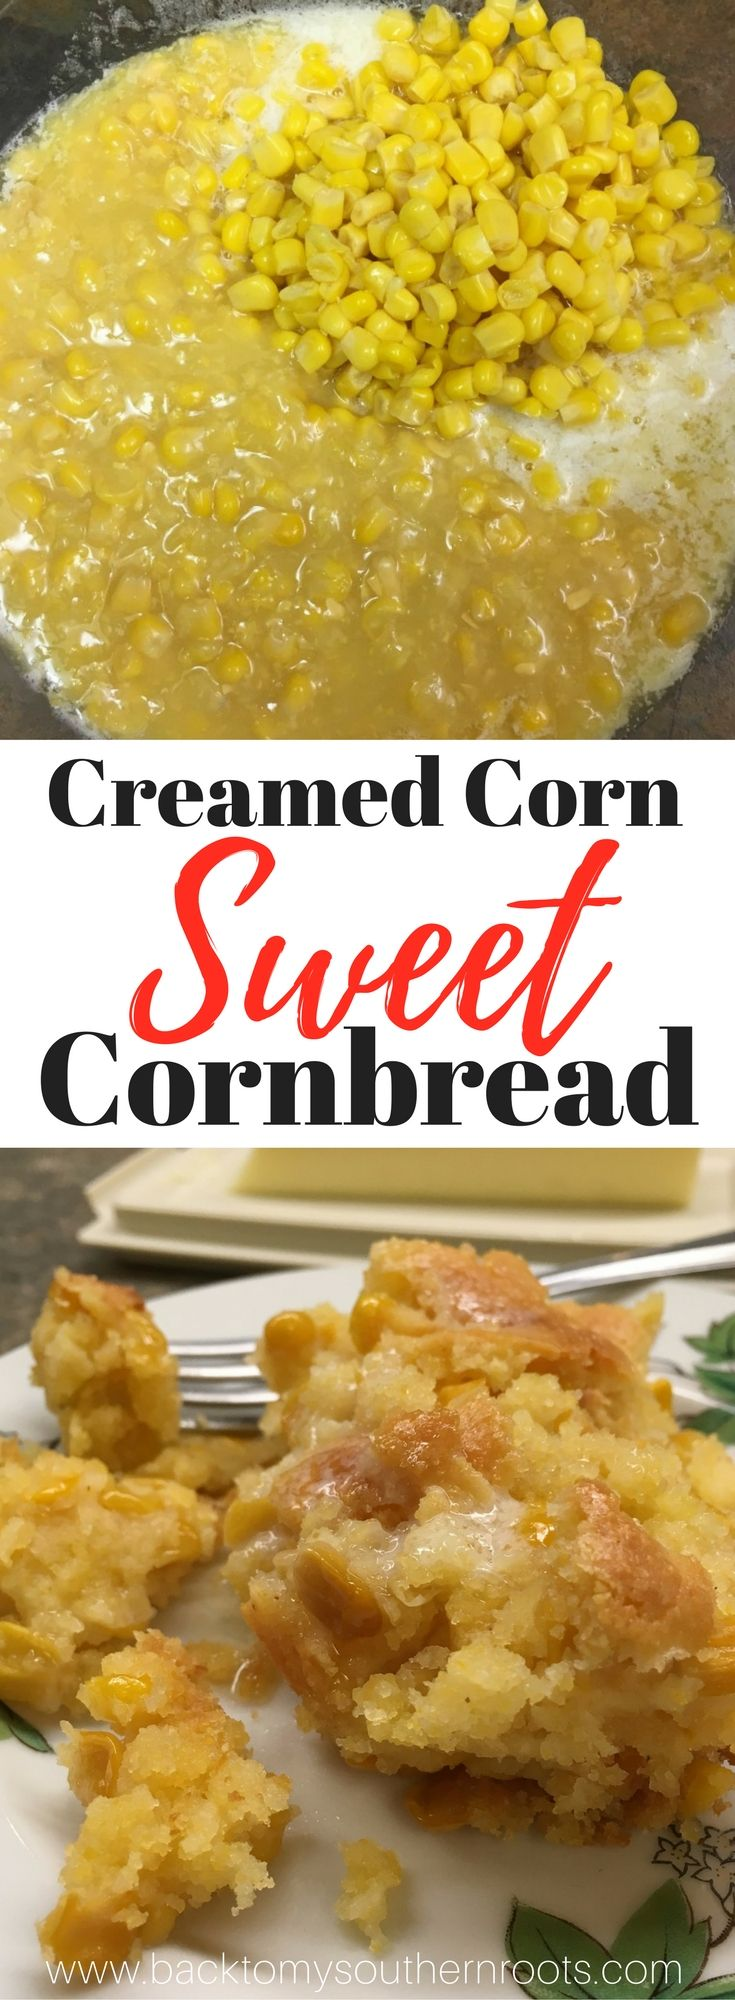 Creamed Corn Sweet Cornbread is a southern staple for dinner and supper. The recipe is easy to make and budget-friendly. Creamed Corn Sweet Cornbread is a delicious side dish that anyone can make.